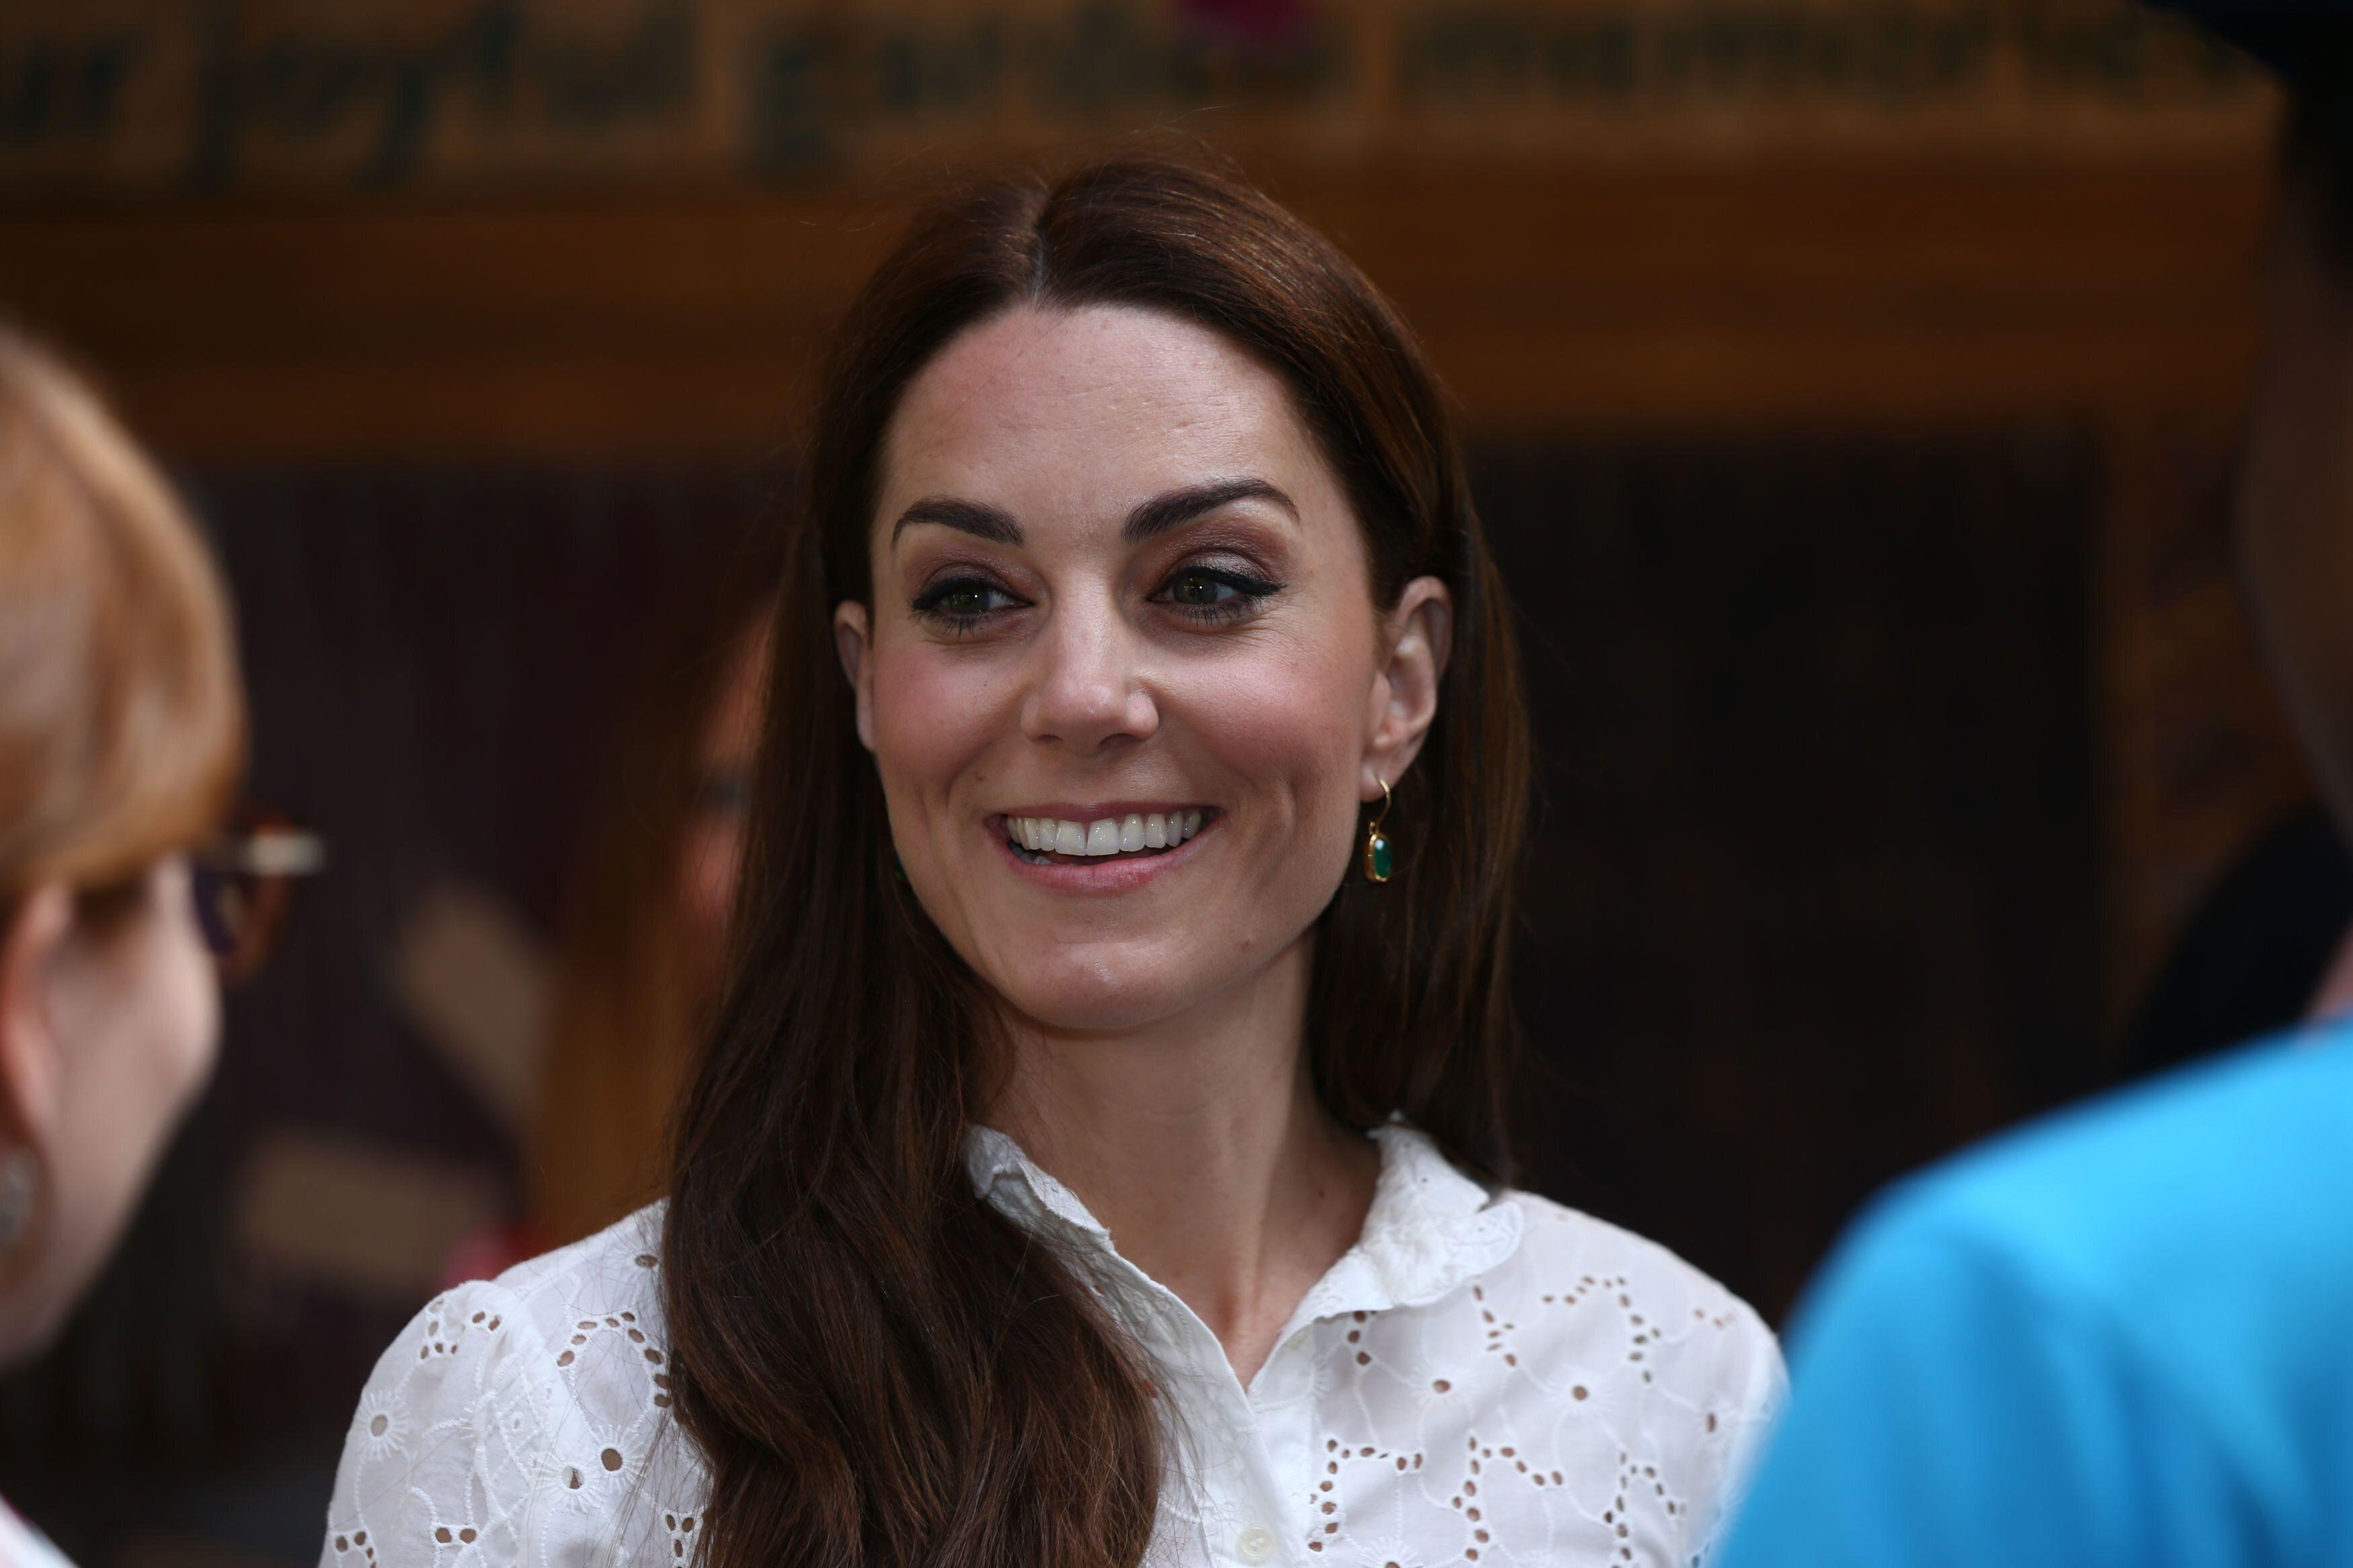 The surprising item Kate Middleton always carries in her car